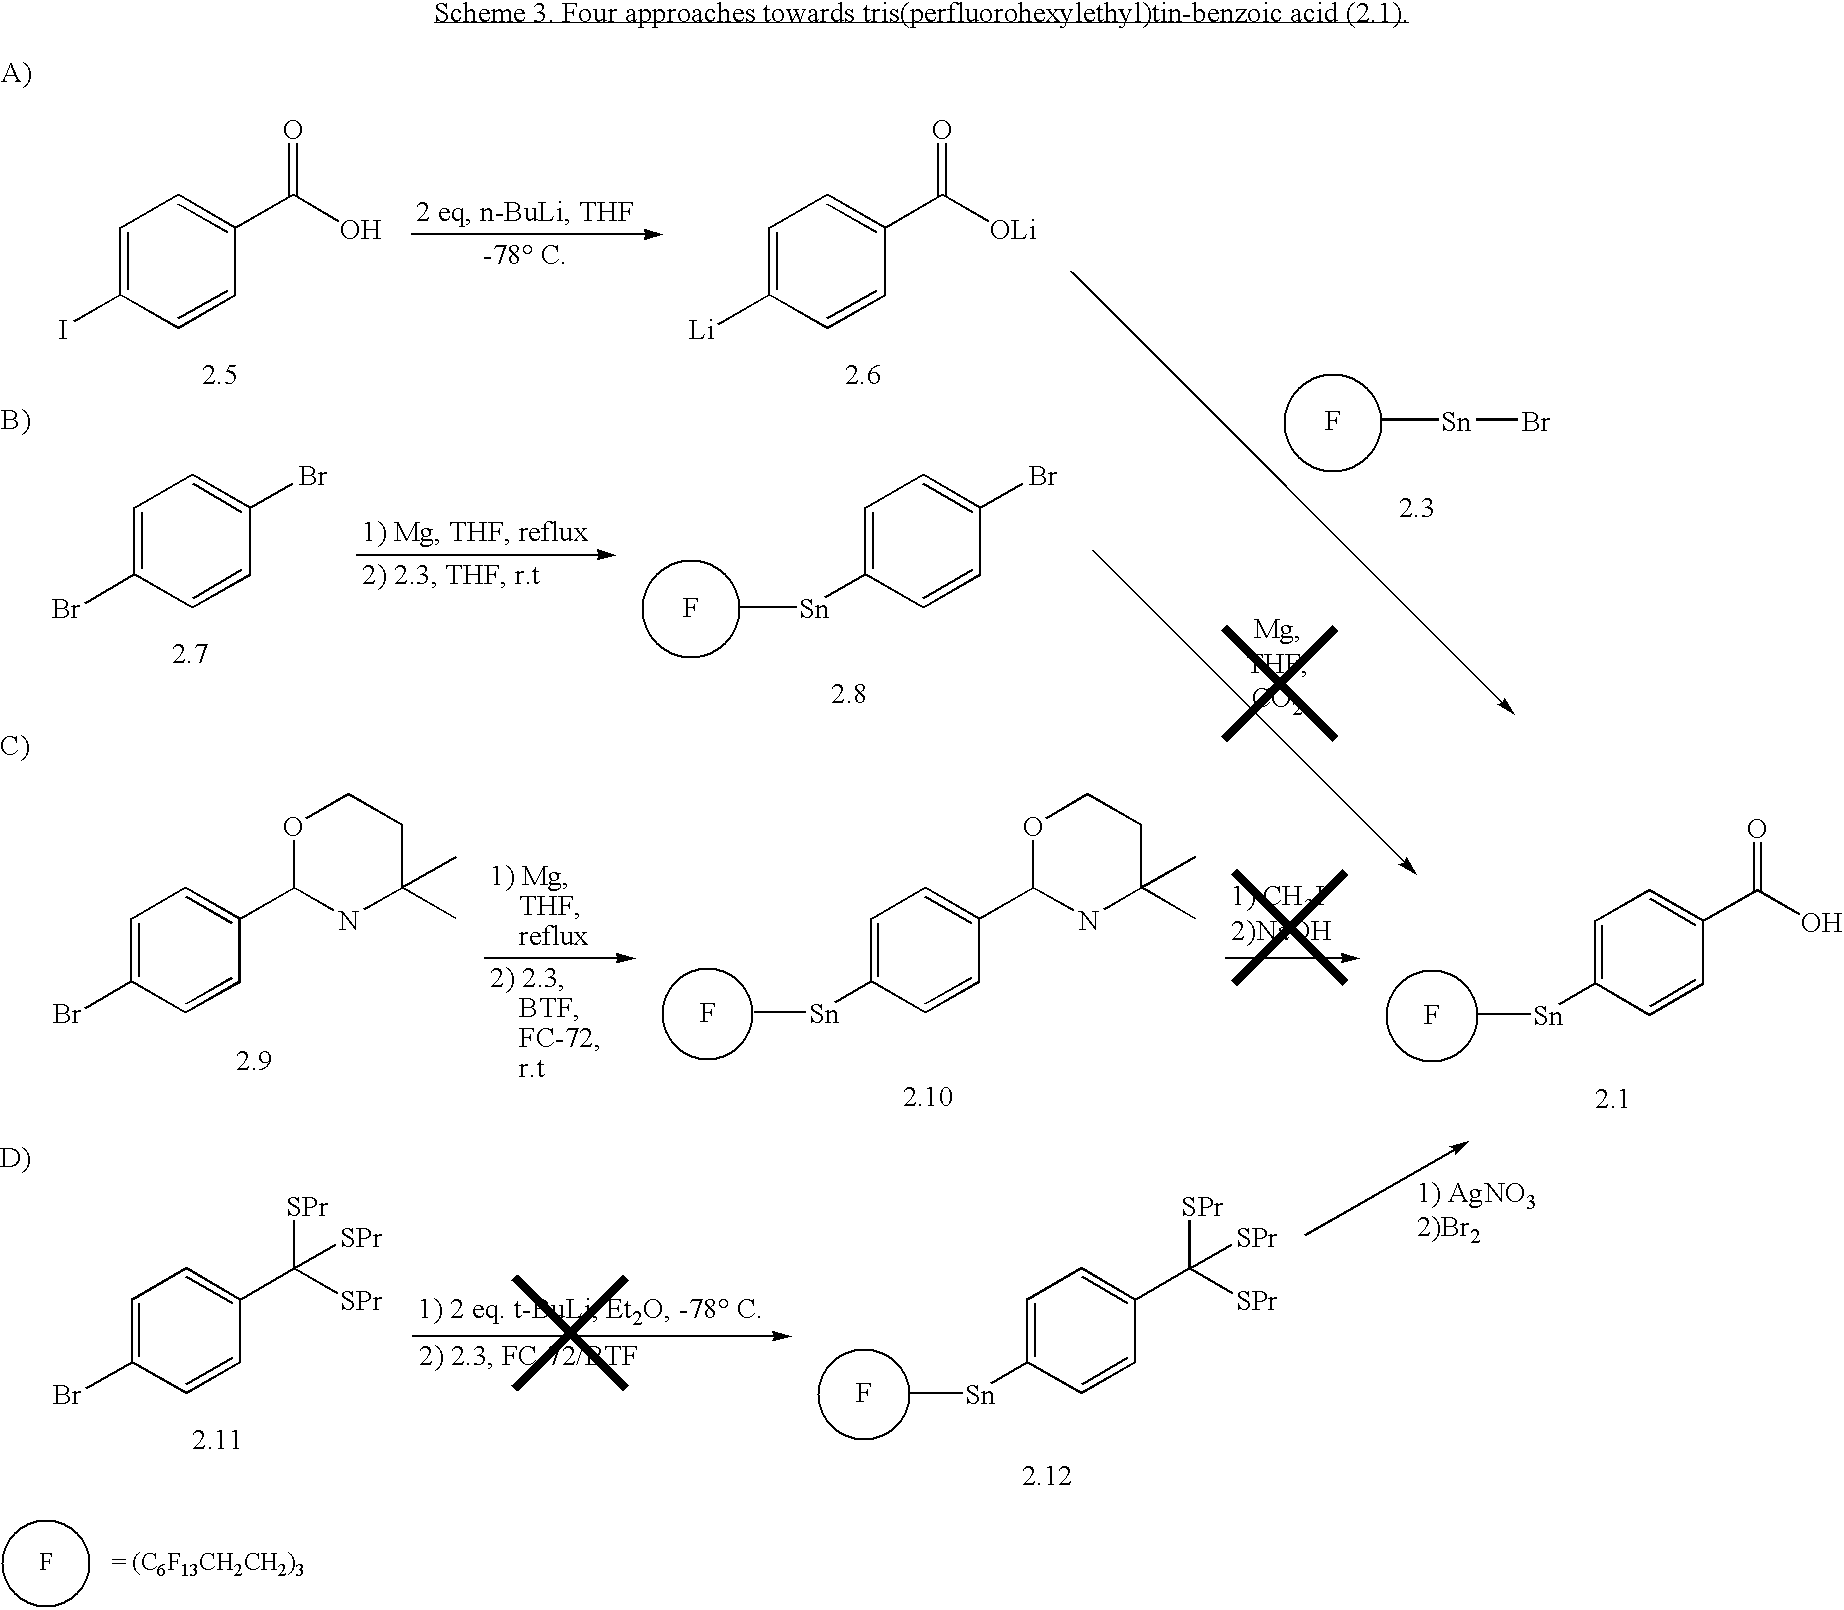 Us20090005545a1 Methods For Purifying Radiolabelled Compounds Hf Data Diagrams O 2 Meta Dibromobenzene Figure 20090101 C00004